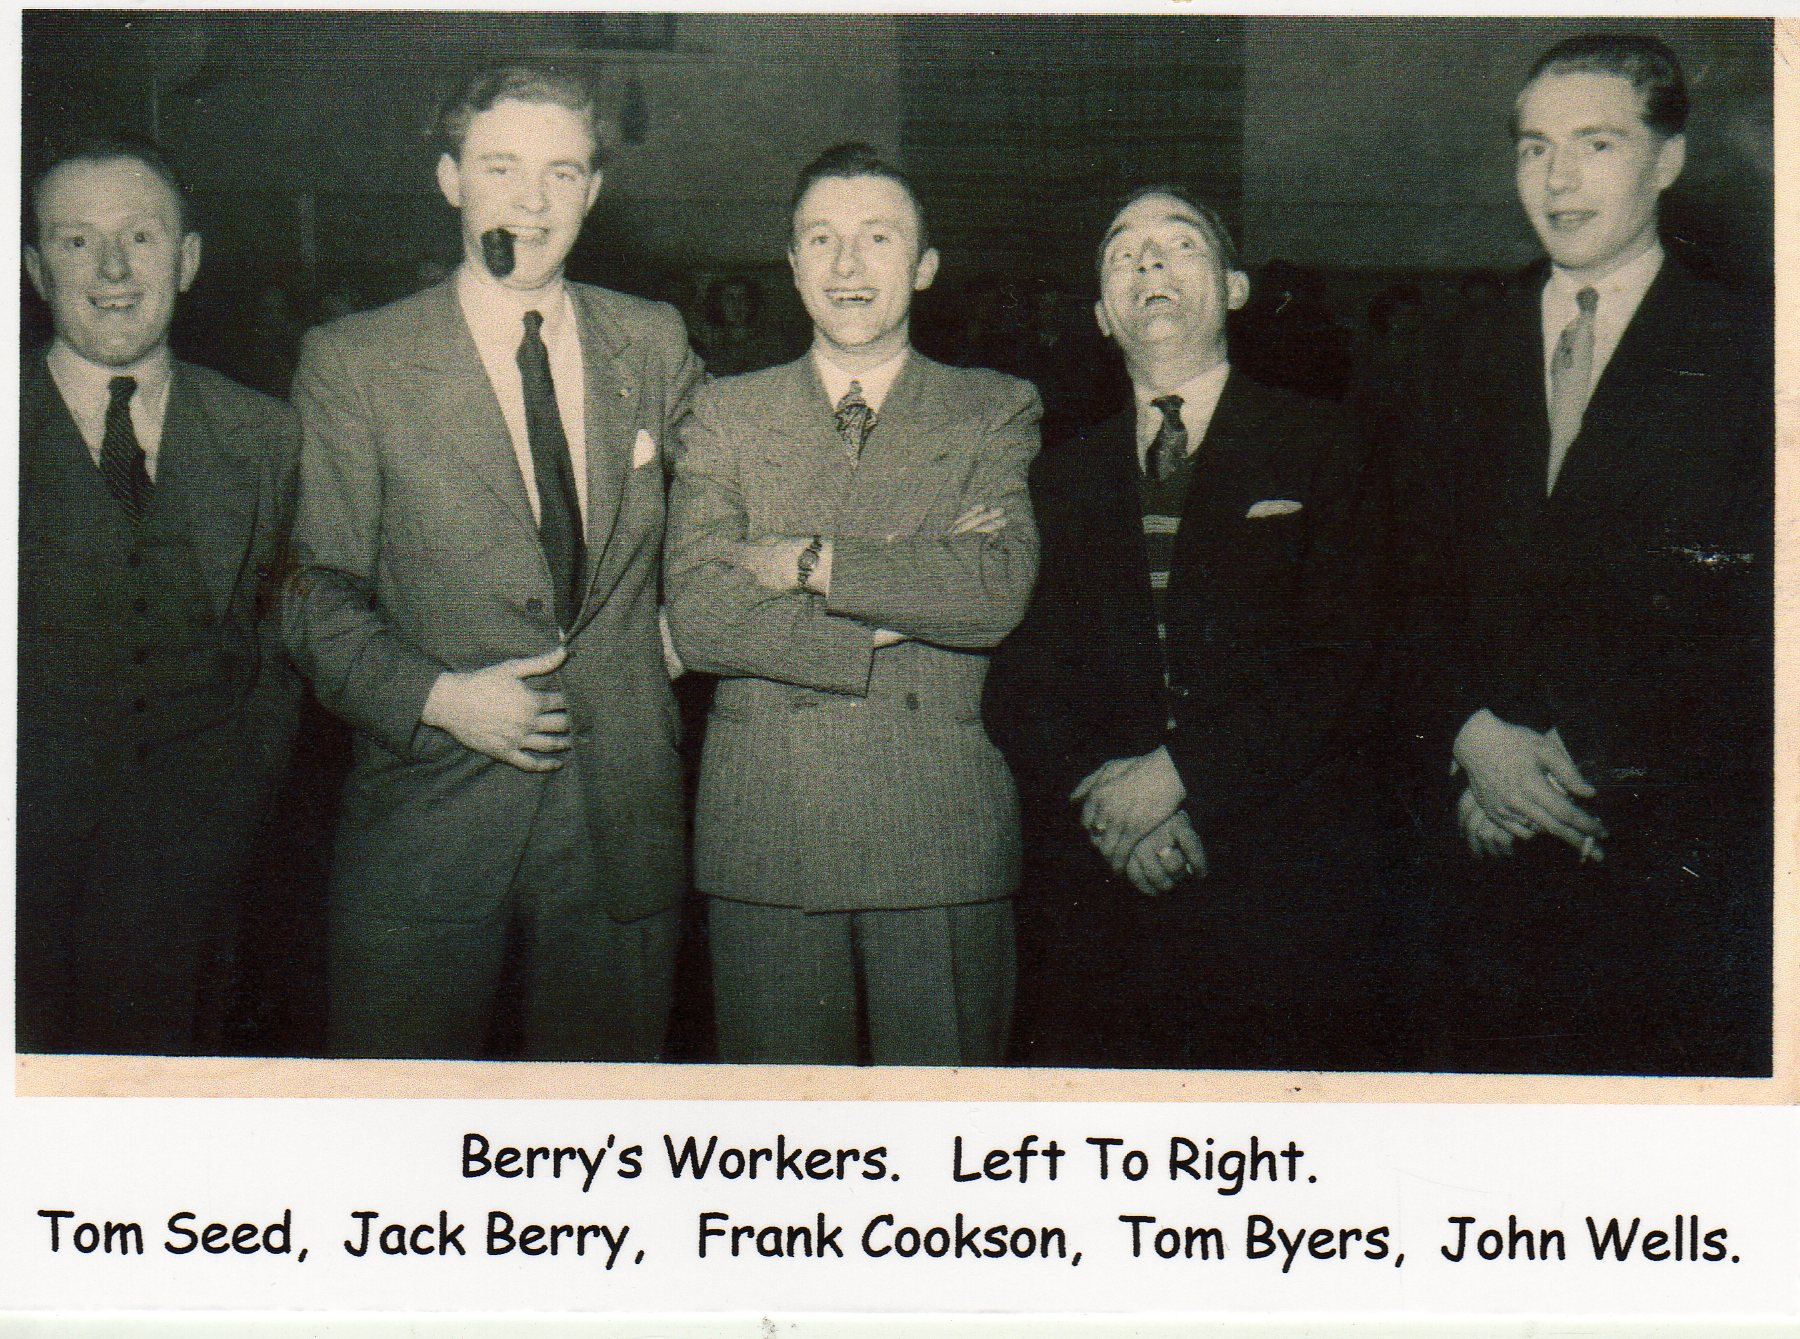 Berry's Party, Tom Seed, Jack Berry, Frank Cookson, Tom Byers, John Wells